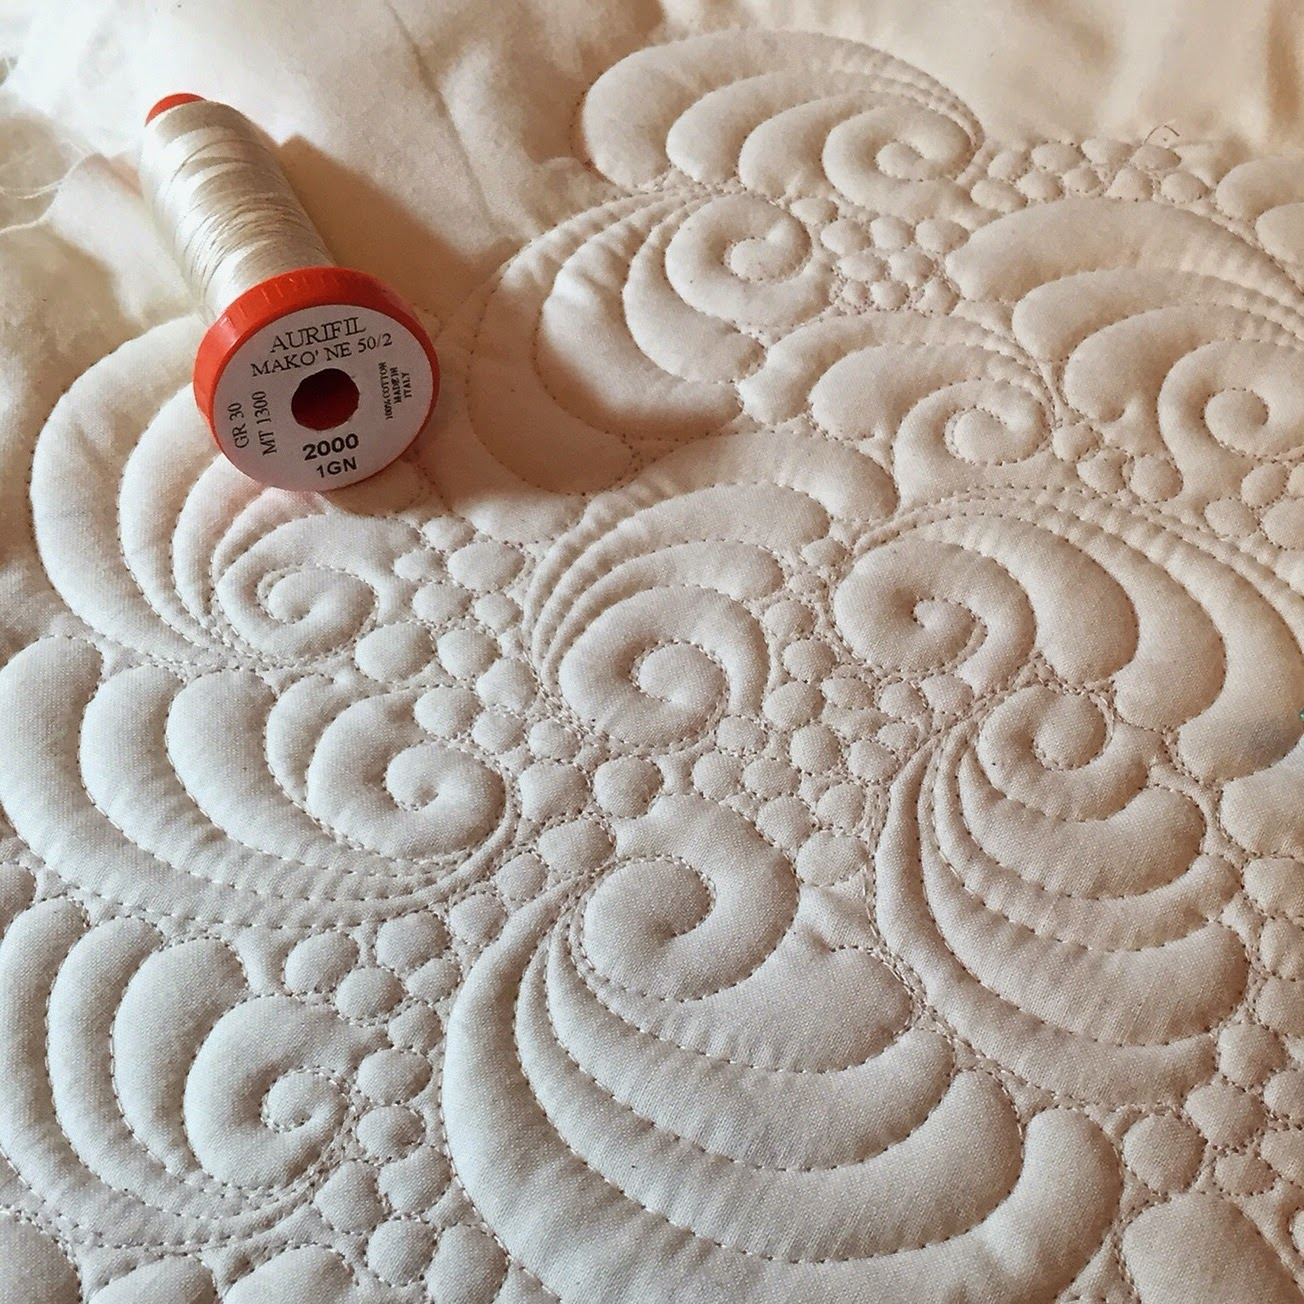 Karen's Quilts, Crows and Cardinals: Free Motion Feather Sampler ... : feather quilting - Adamdwight.com